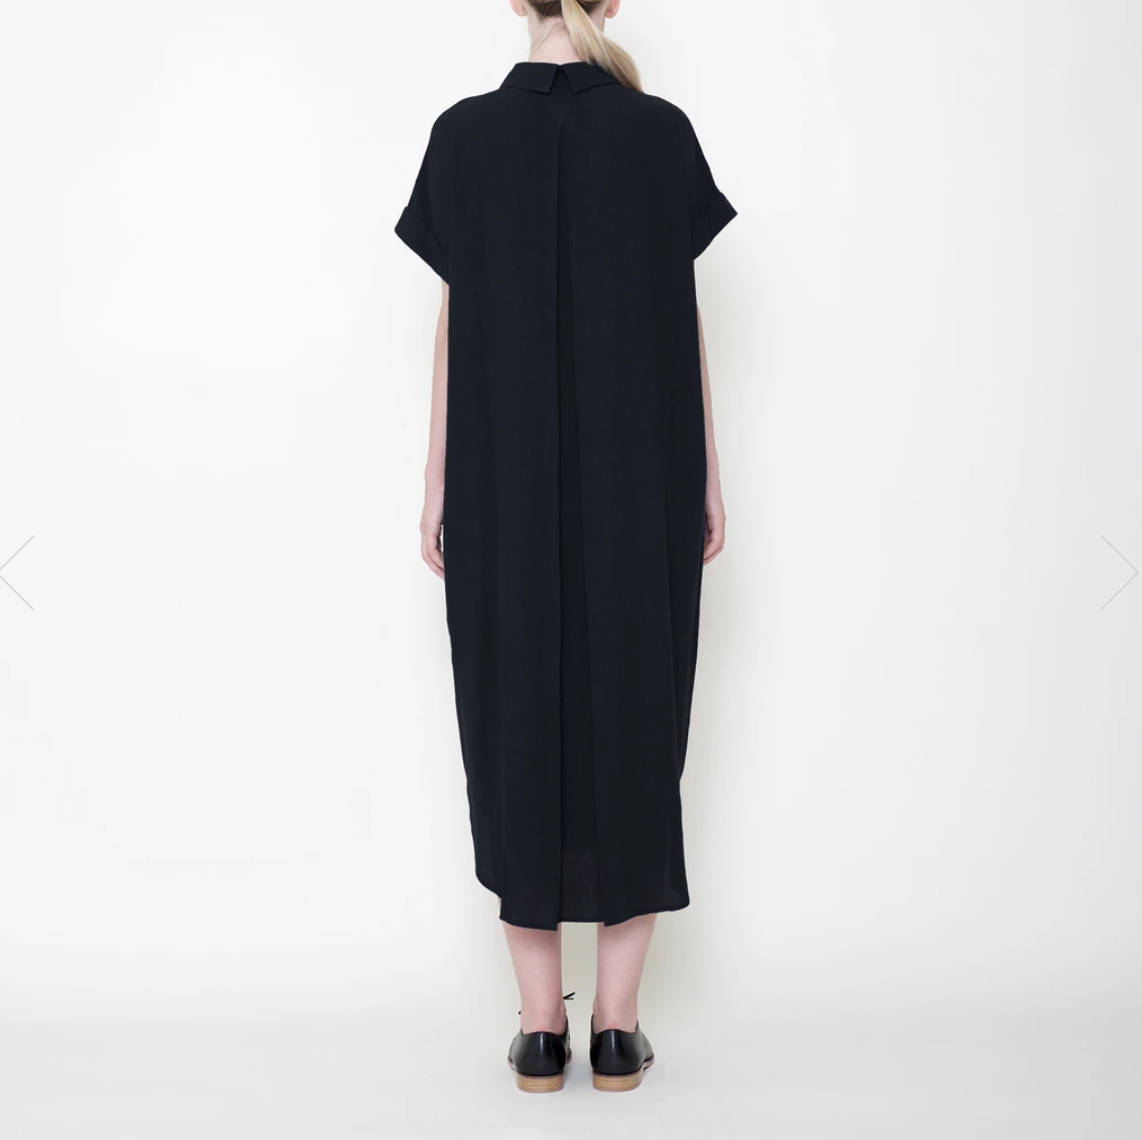 7115 by SZEKI Signature Shirt Maxi Dress, Black